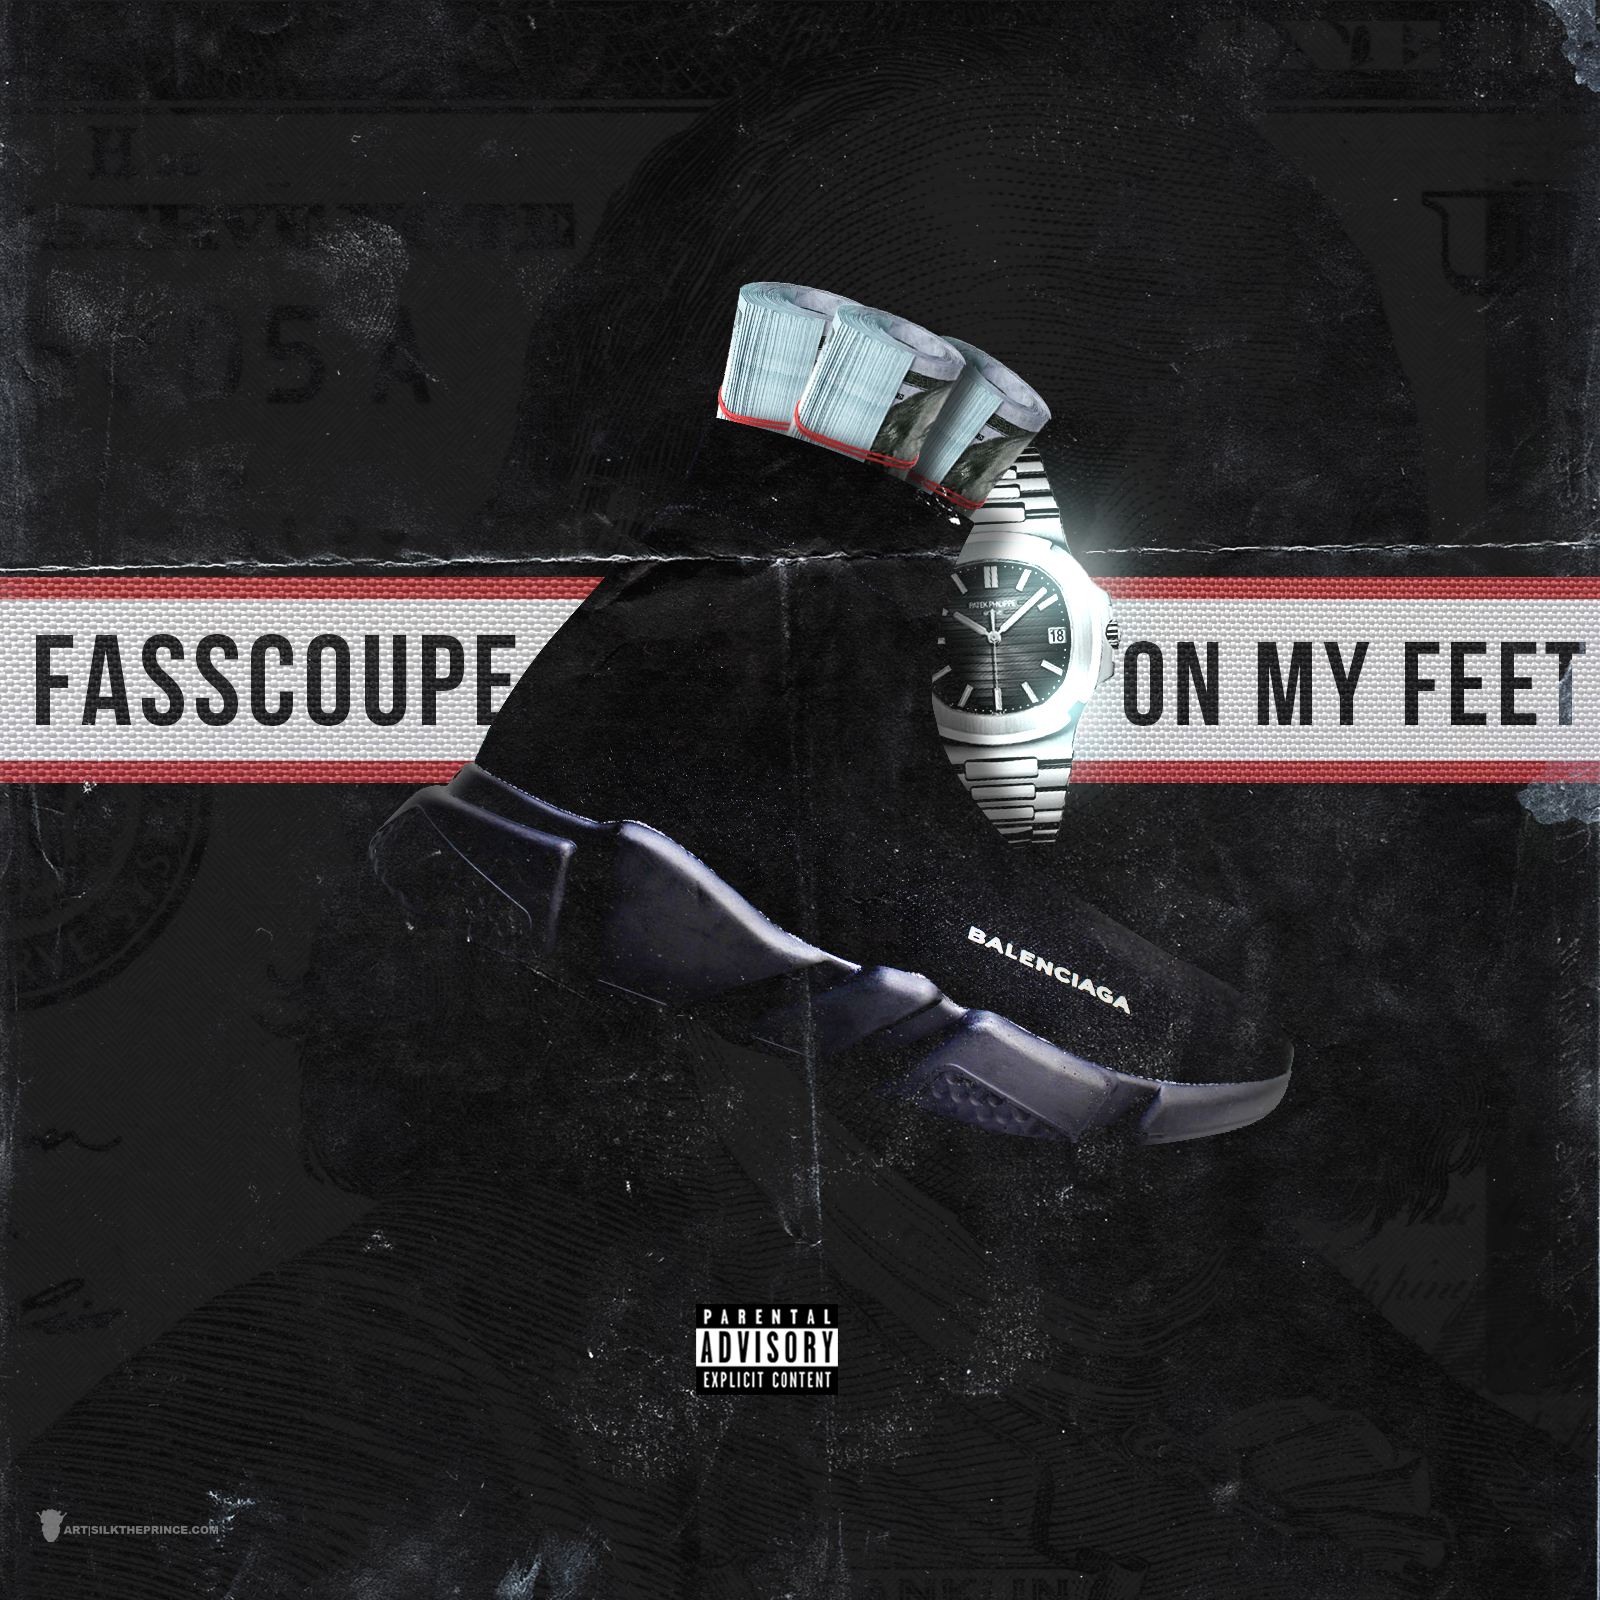 Fasscoupe Drops New Single 'Get On My Feet' [STREAM]